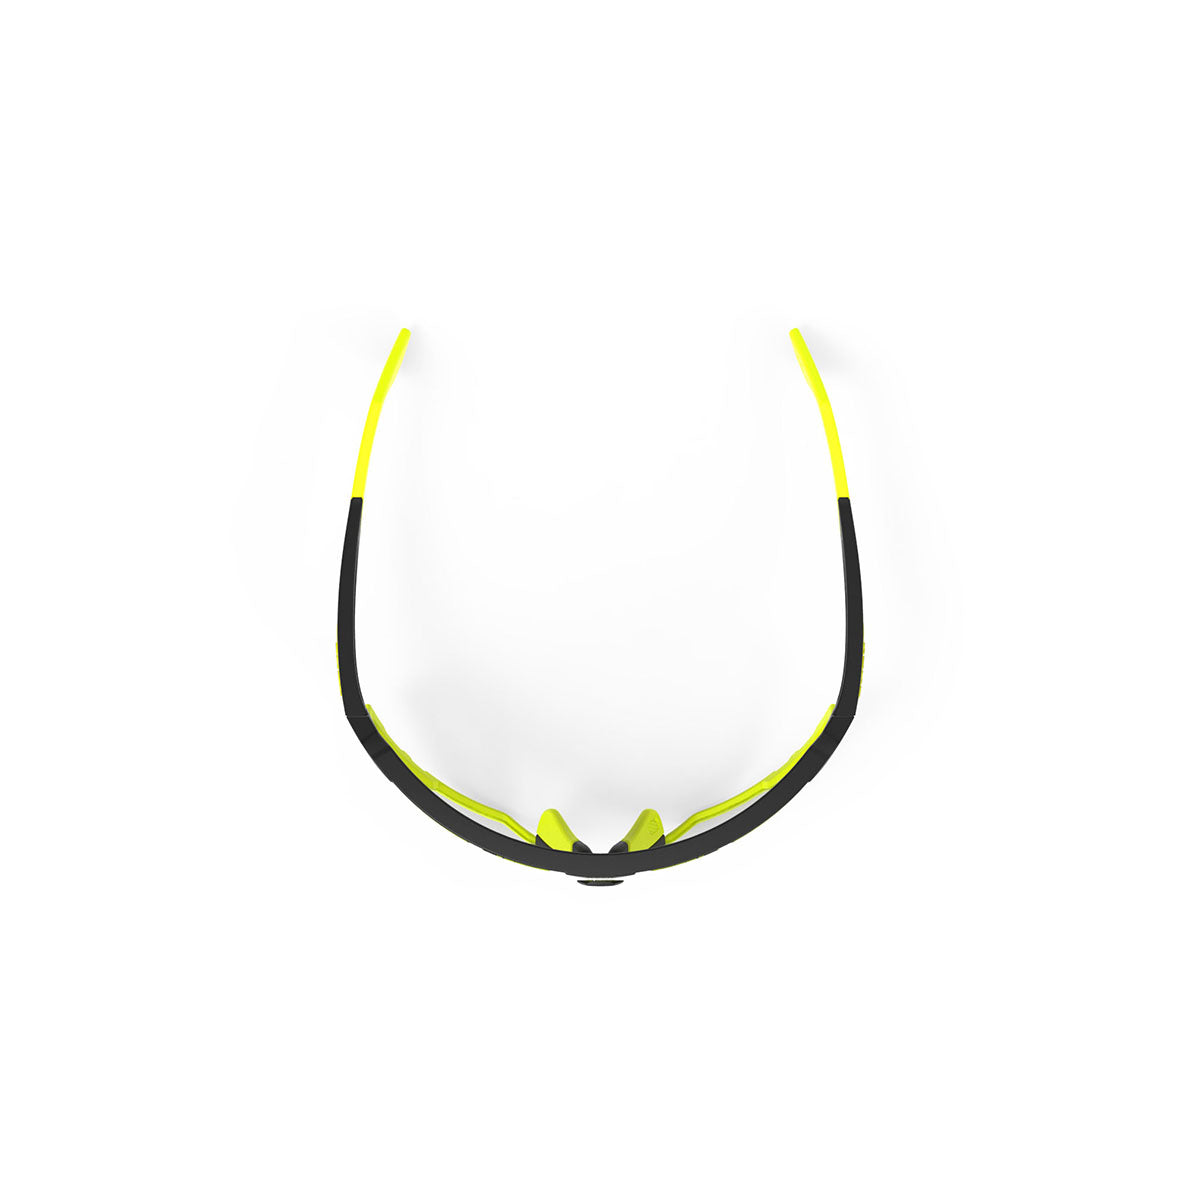 Rudy Project - Defender - frame color: Matte Black - lens color: ImpactX-2 Photochromic Clear to Laser Black - Bumper Color: Yelow Fluo - photo angle: Top Variant Hover Image